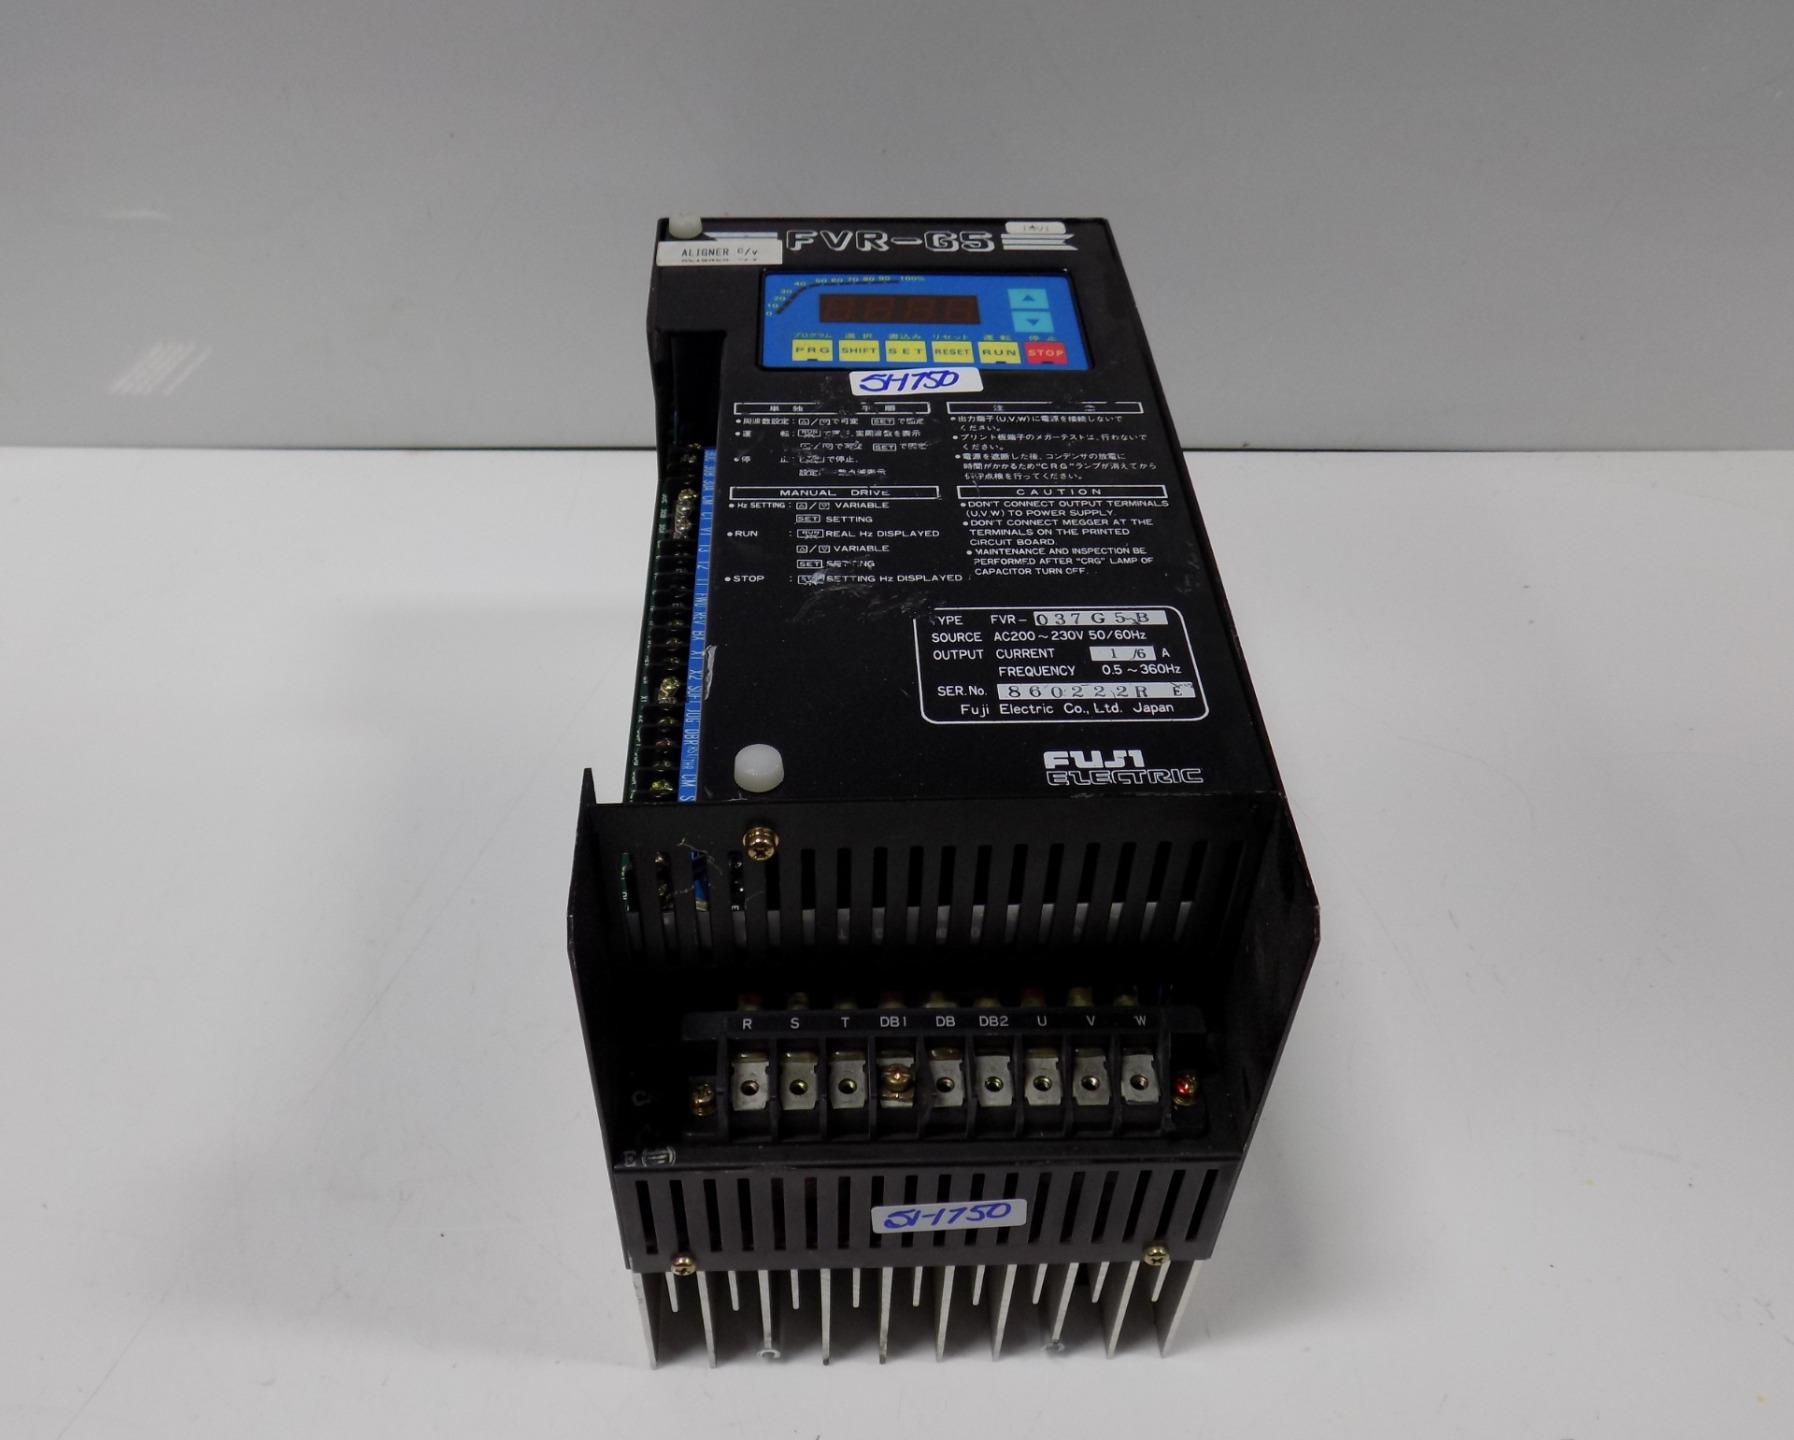 Fuji Electric Variable Frequency Drive Fvr 037g5b Ebay Printed Circuit Board Technology Conceptual A Message From The System Admin Of Concepts Industrial We Are Taking Some Maters Into Our Own Hands Regarding